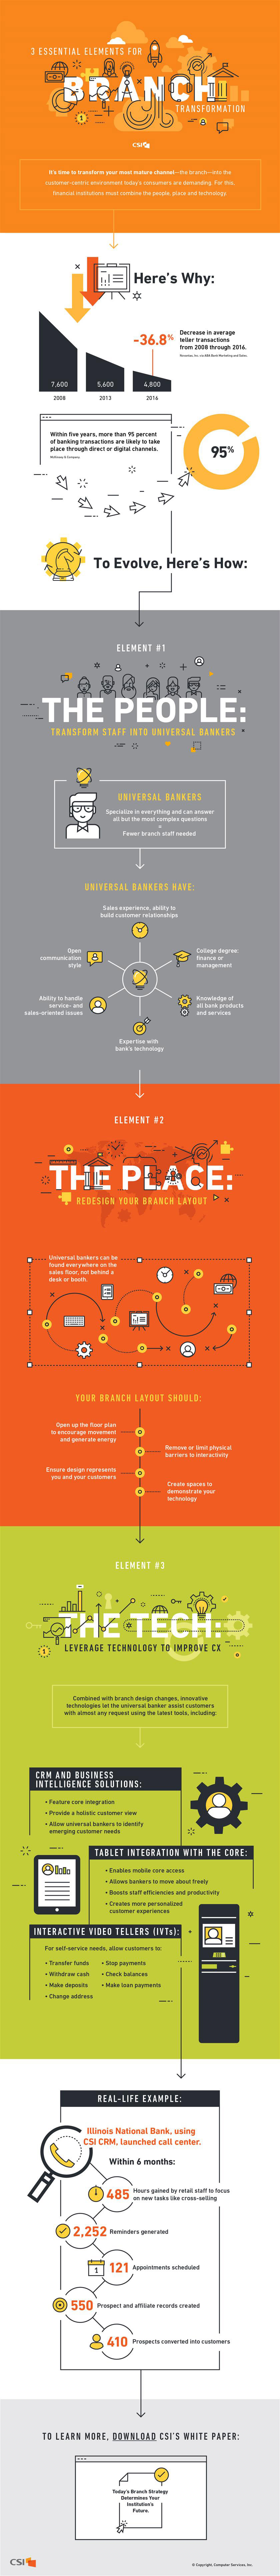 Infographic: Transform Your Branch into the Ultimate Customer Destination